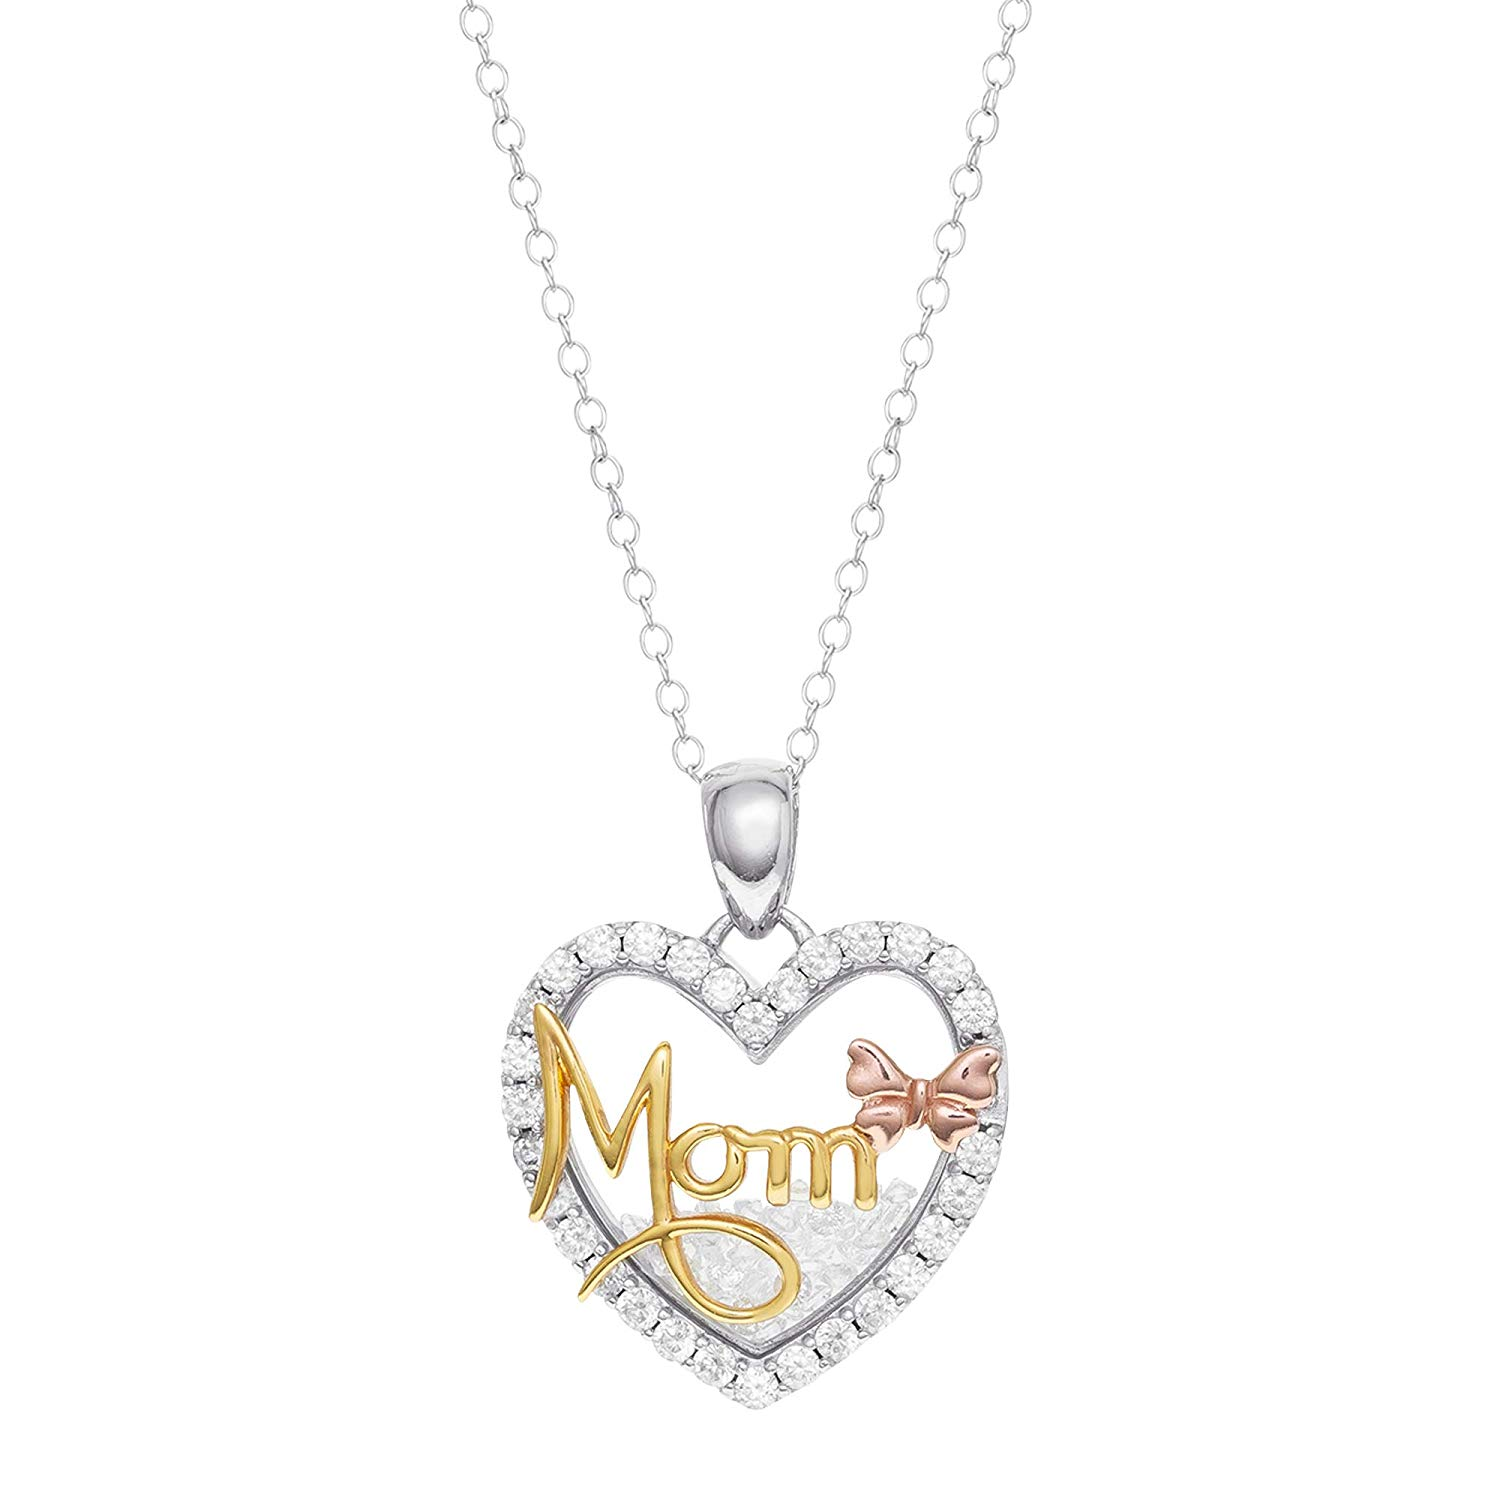 1590e6bf7d042a Hallmark Jewelry for Women, Sterling Silver Cubic Zirconia Heart Shaped  'Mom' Shaker Pendant